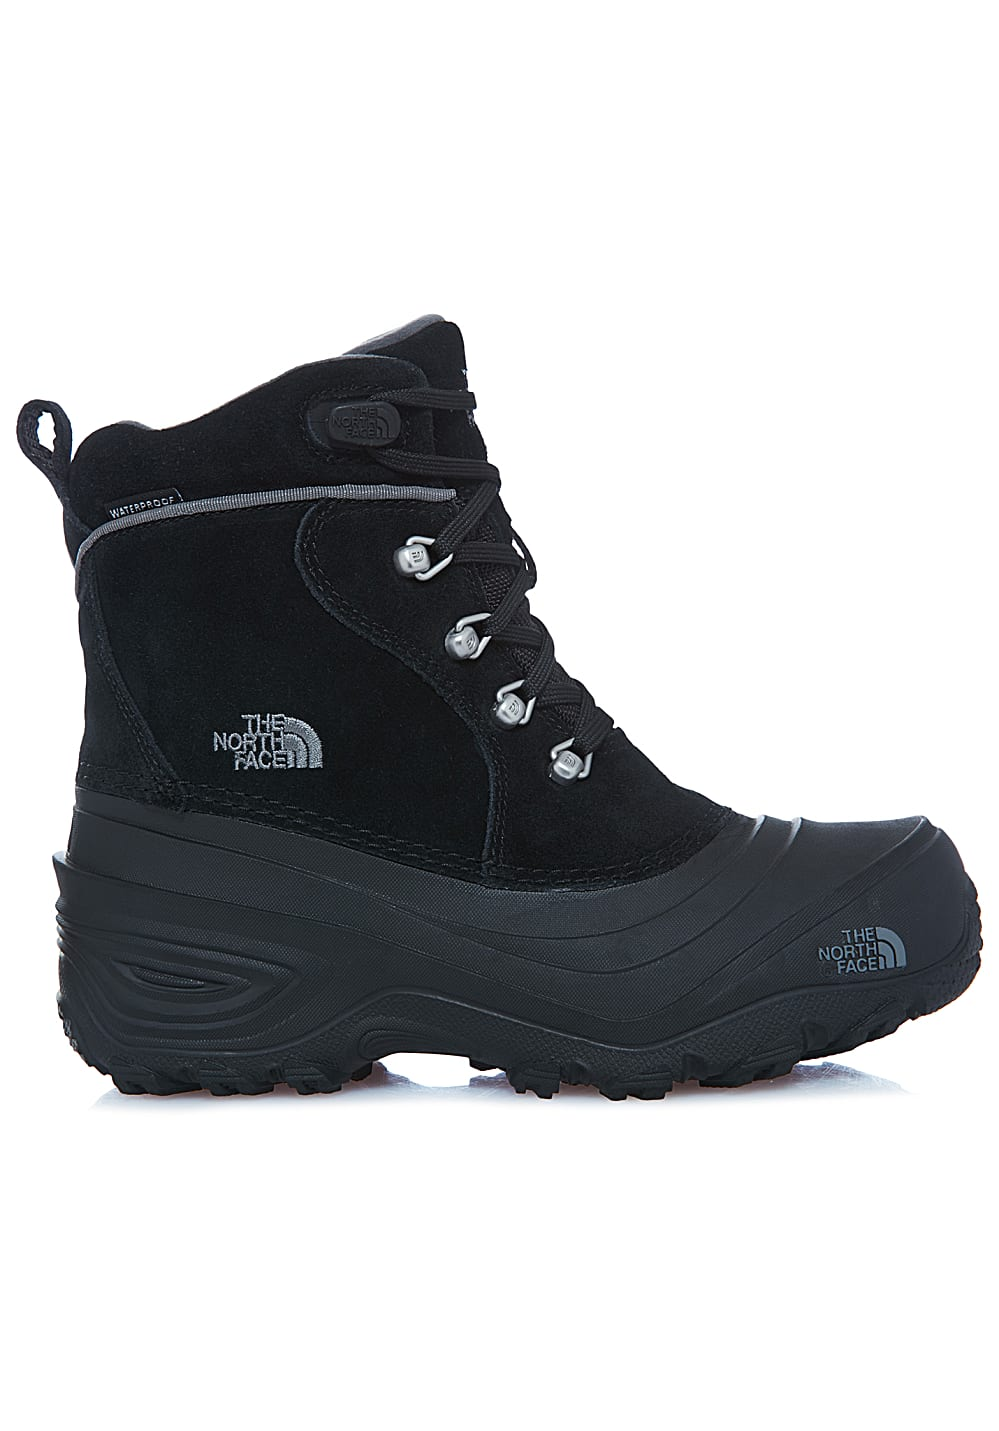 THE NORTH FACE Chilkat Lace 2 Bergschuhe - Schwarz - 28